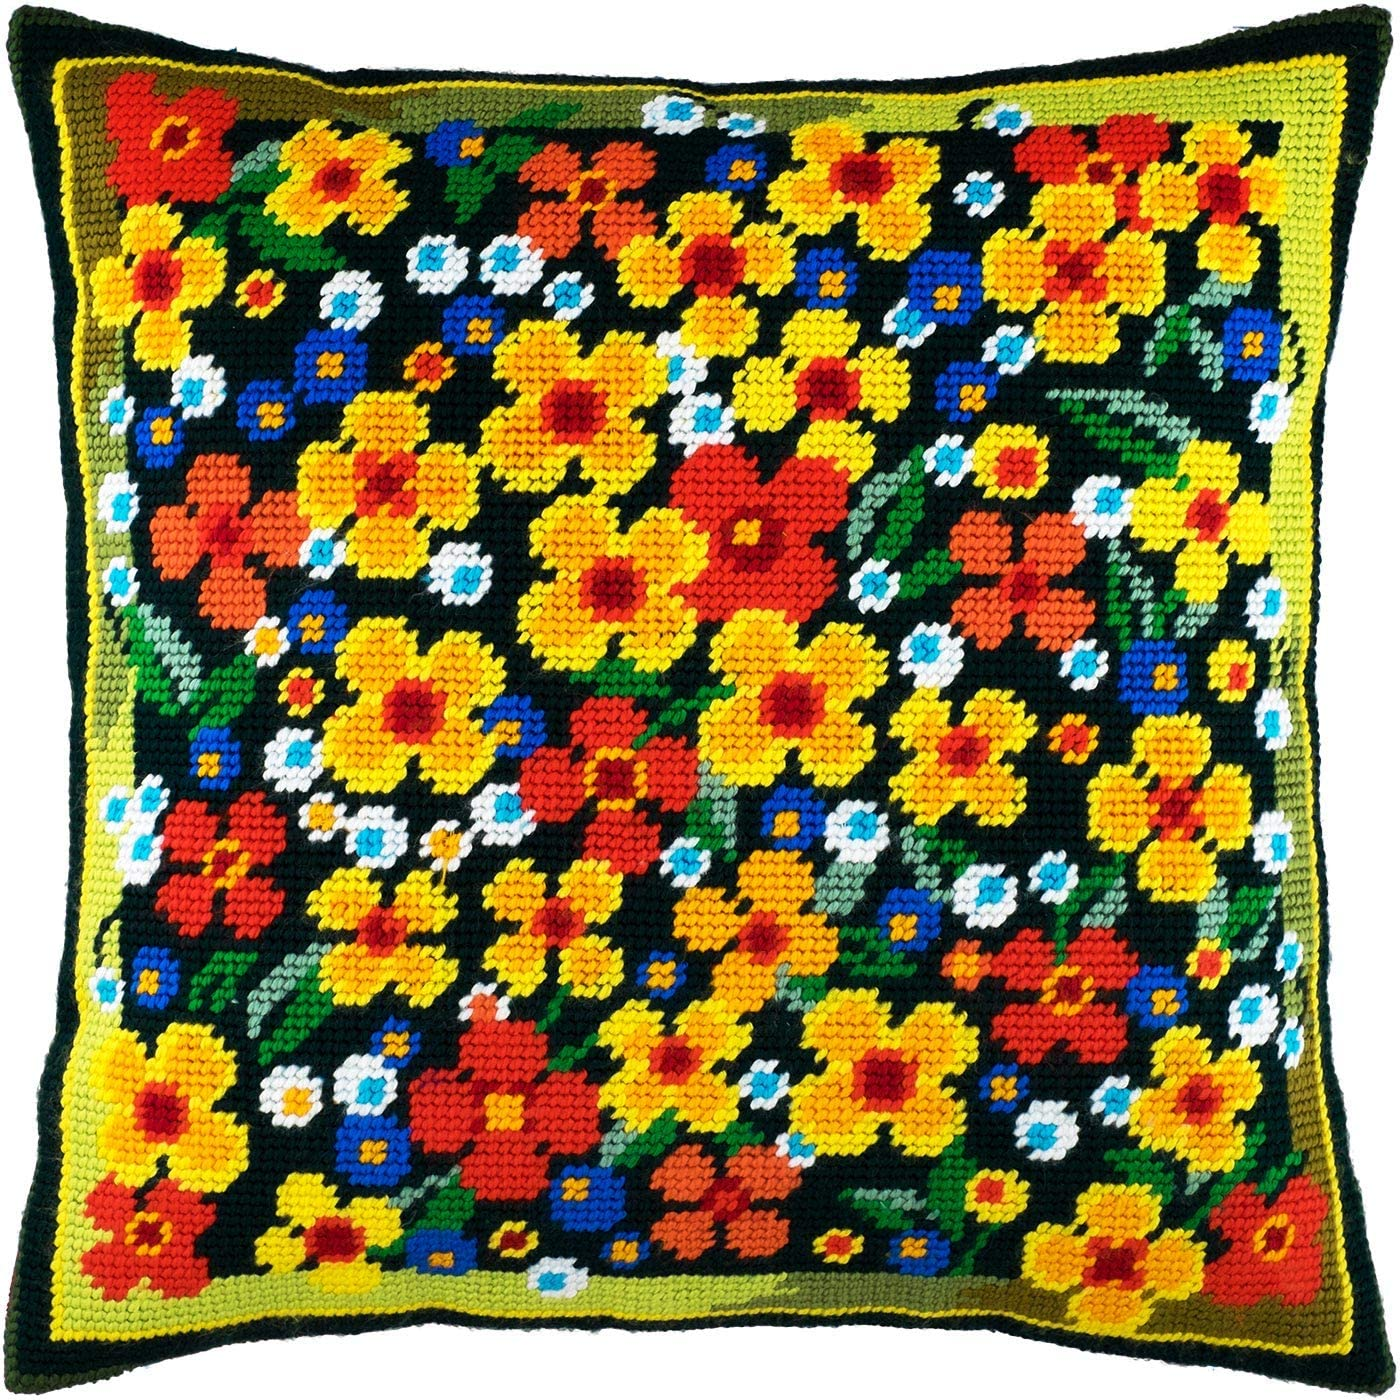 Meadow Detroit Mall of Flowers. Needlepoint Import Kit. Inches 16×16 Pillow Throw